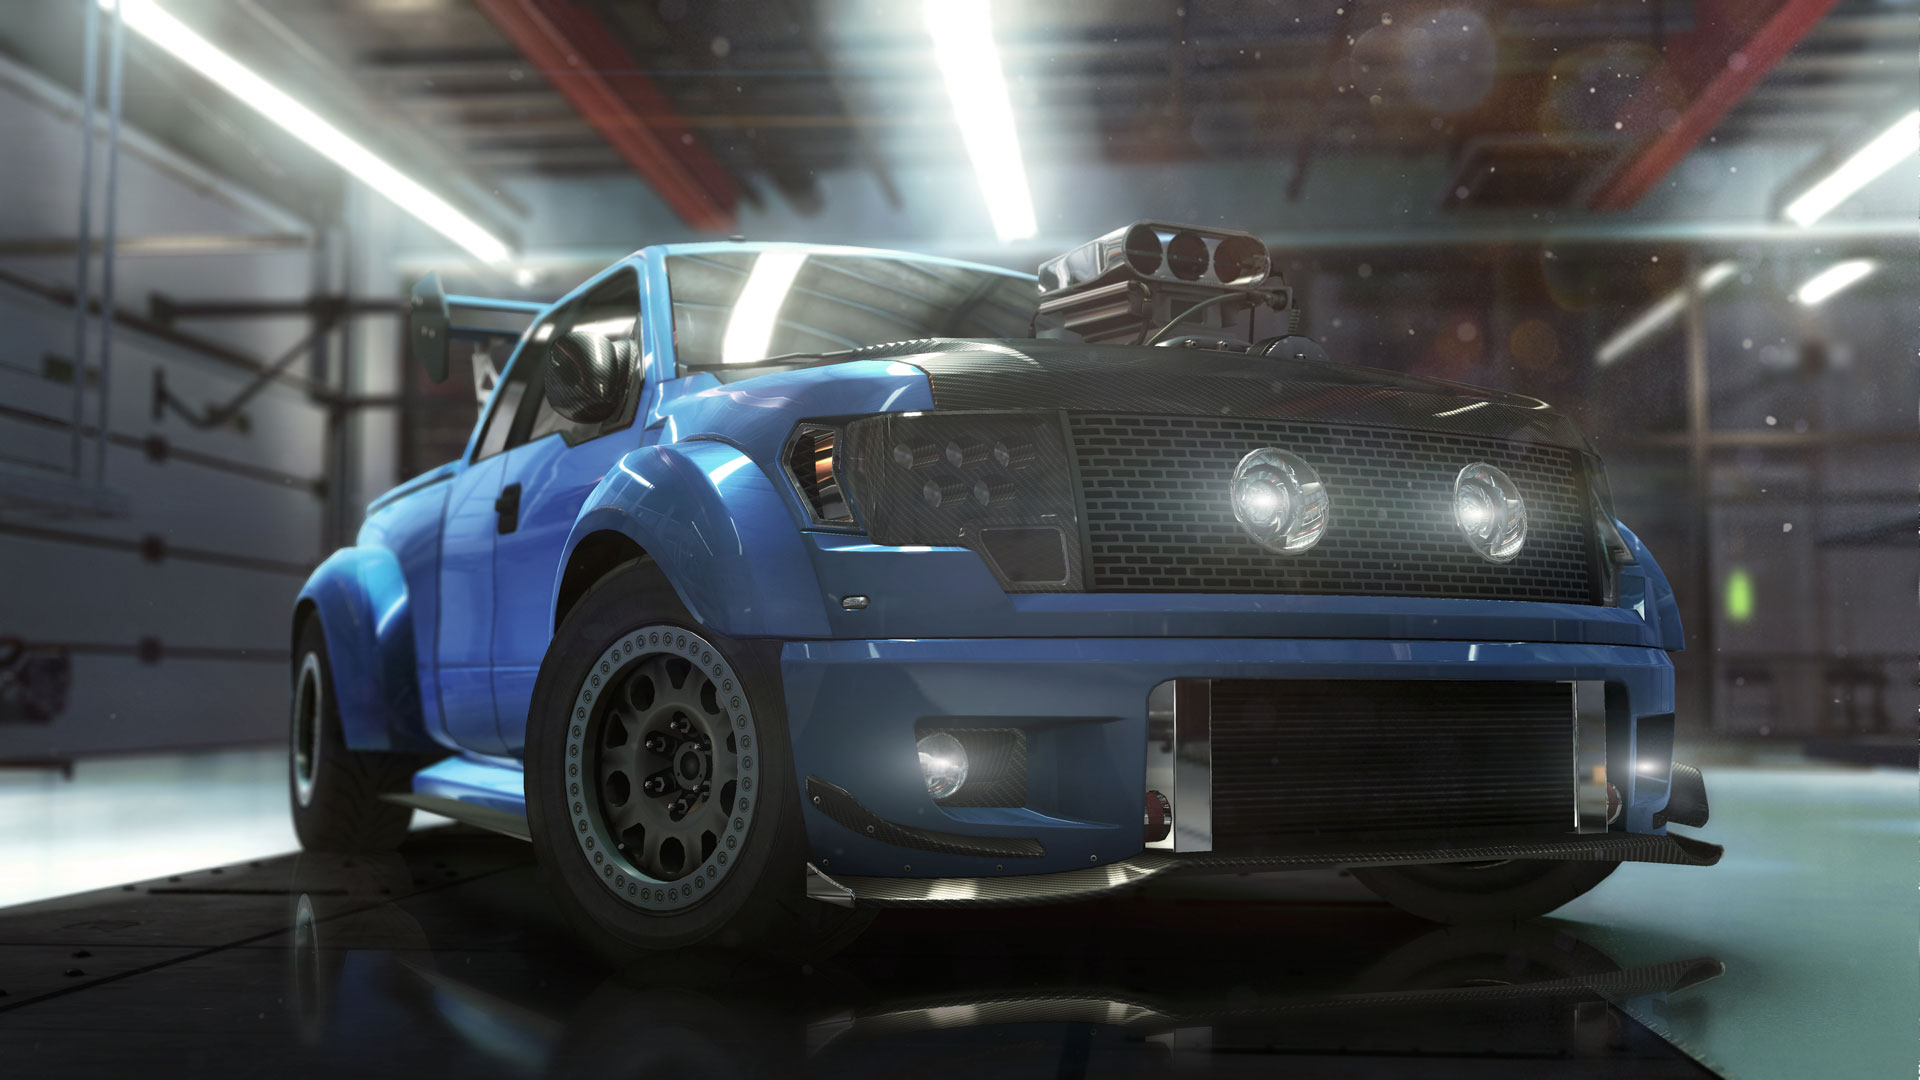 Image ford f150 svt raptor perf bigg the crew wiki fandom ford f150 svt raptor perf bigg voltagebd Choice Image